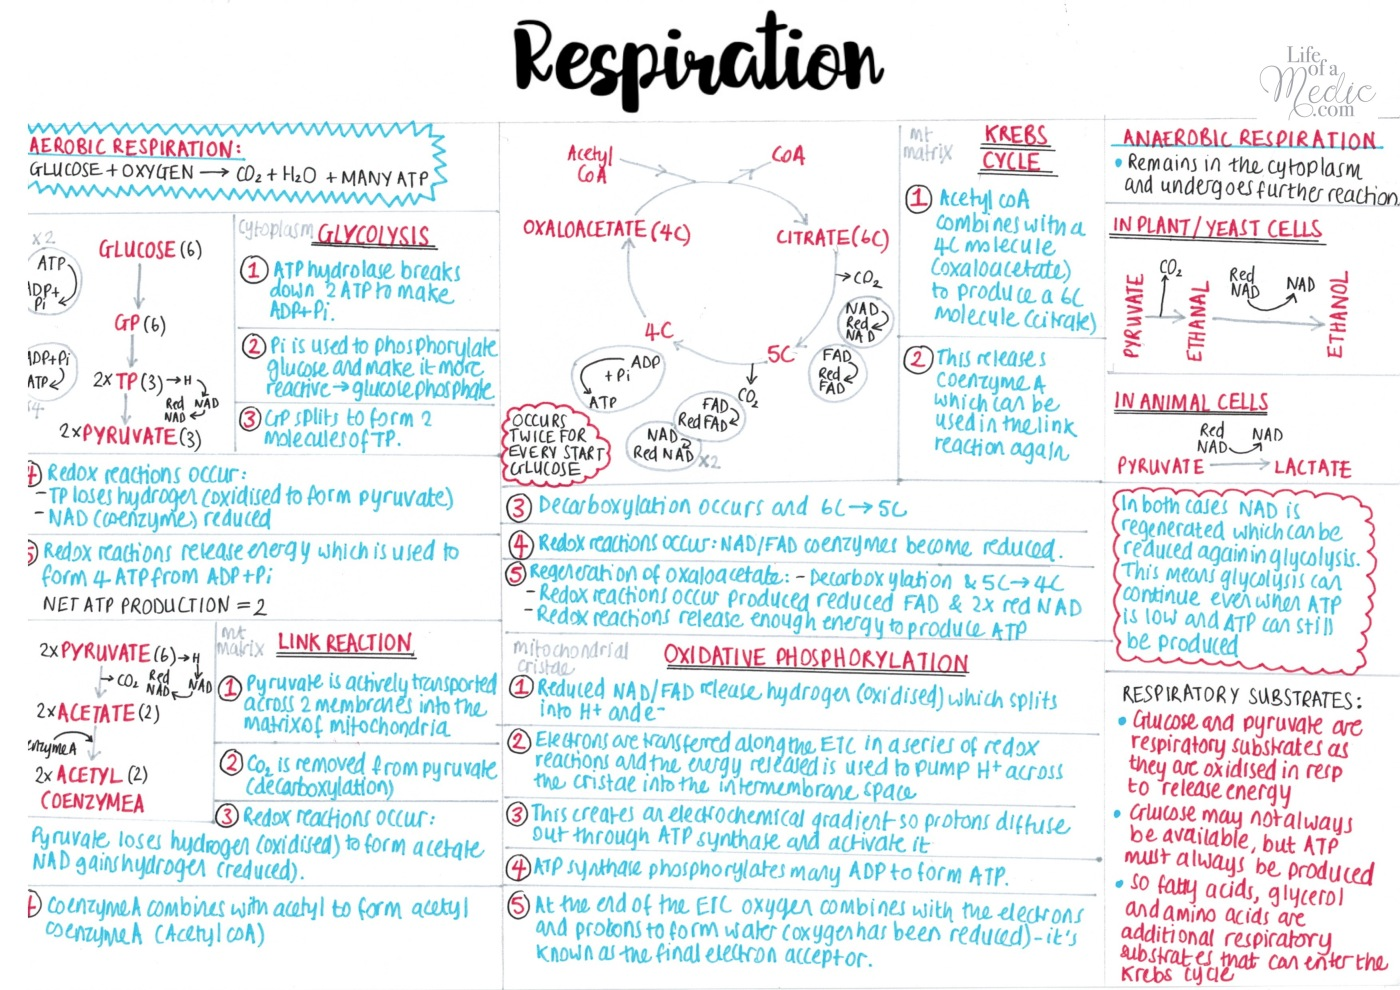 Respiration - A level Biology 1-page summary